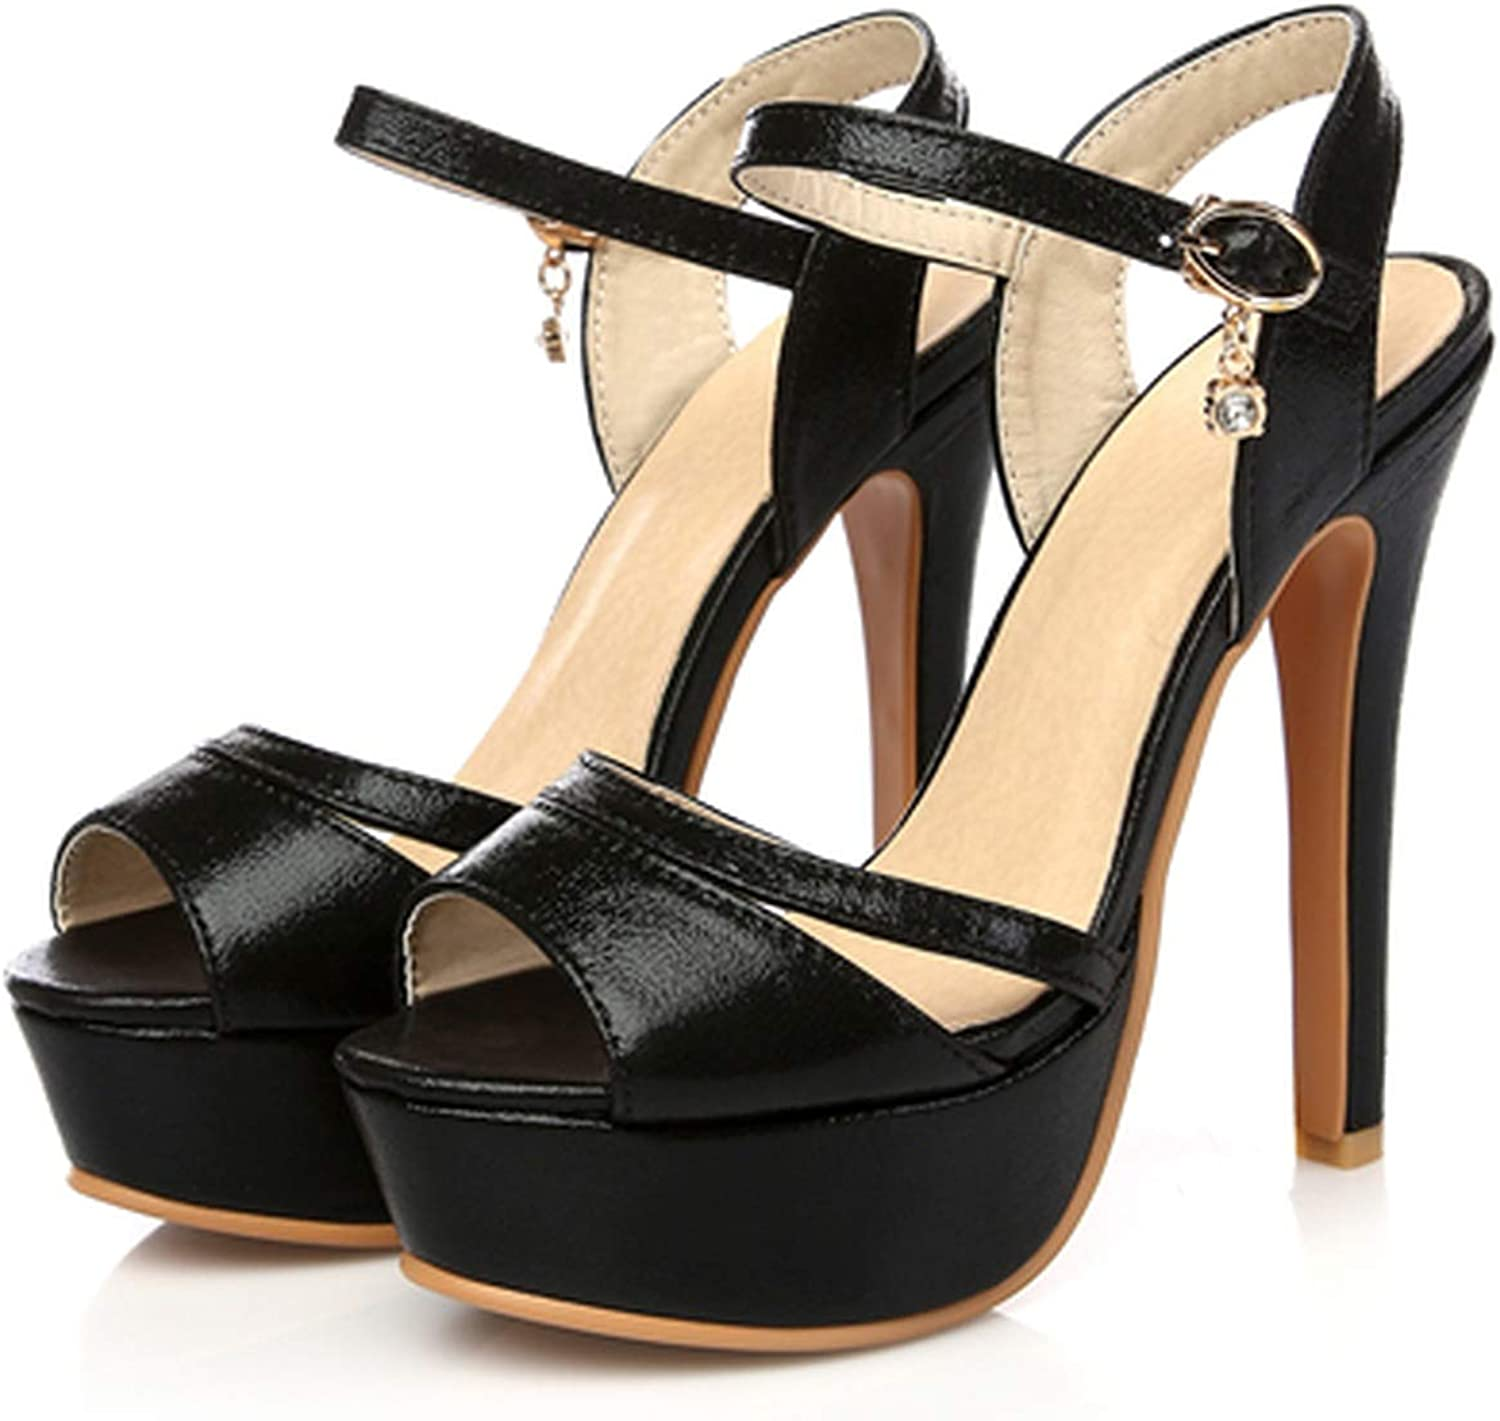 Fanatical-Night The Product was Upgrade, Summer Fashion Women Sandals Sexy High Heel Sandal